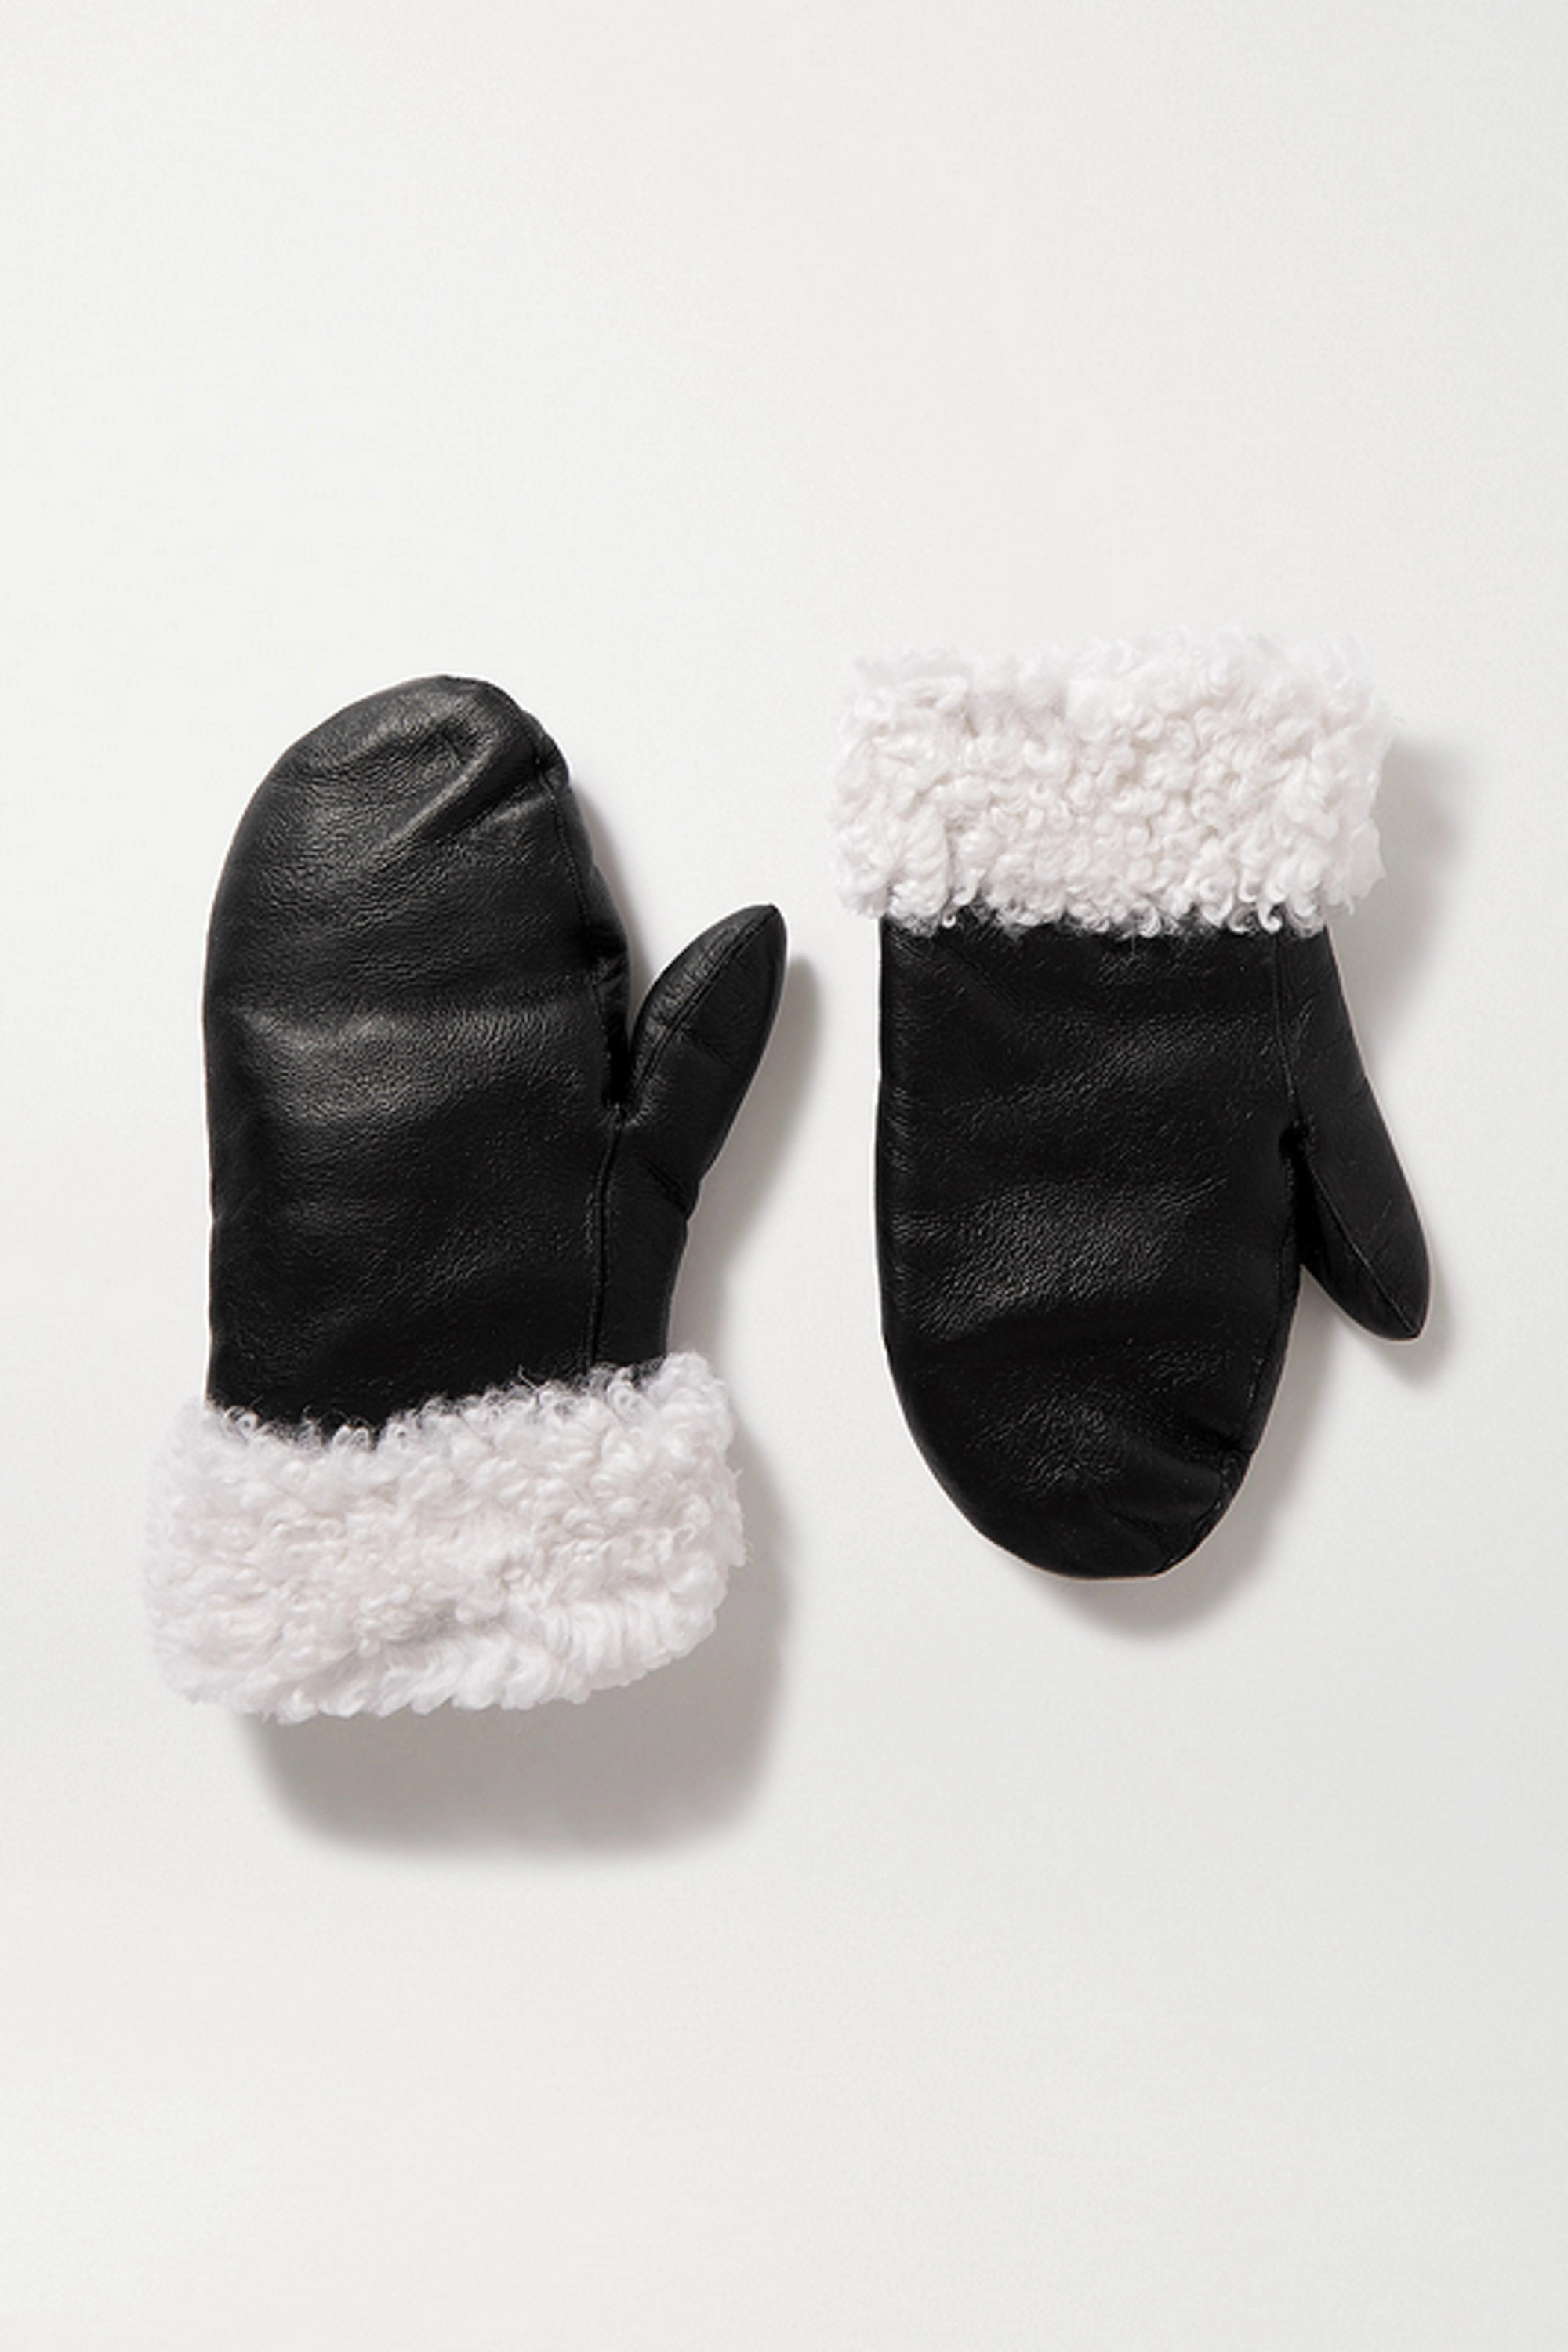 Yves Salomon Shearling-trimmed leather mittens